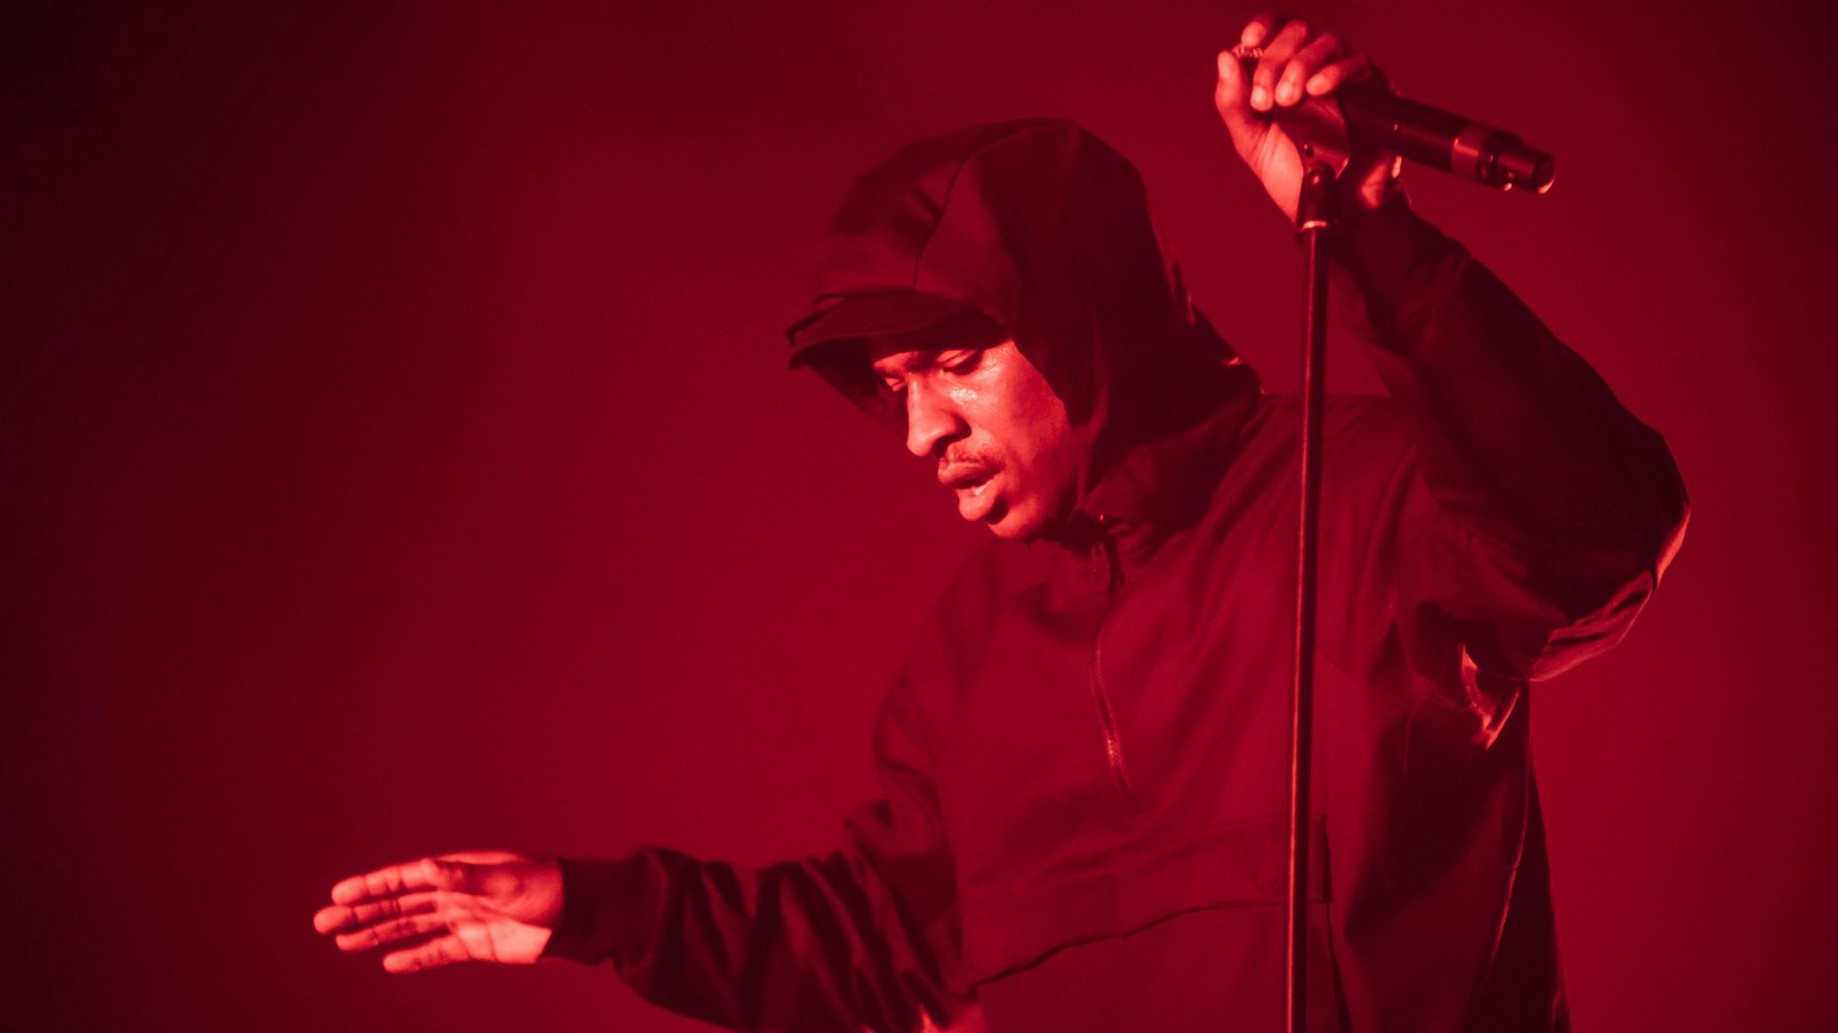 Essay: Race and Ethnicity theories applied to Skepta and Grime Music